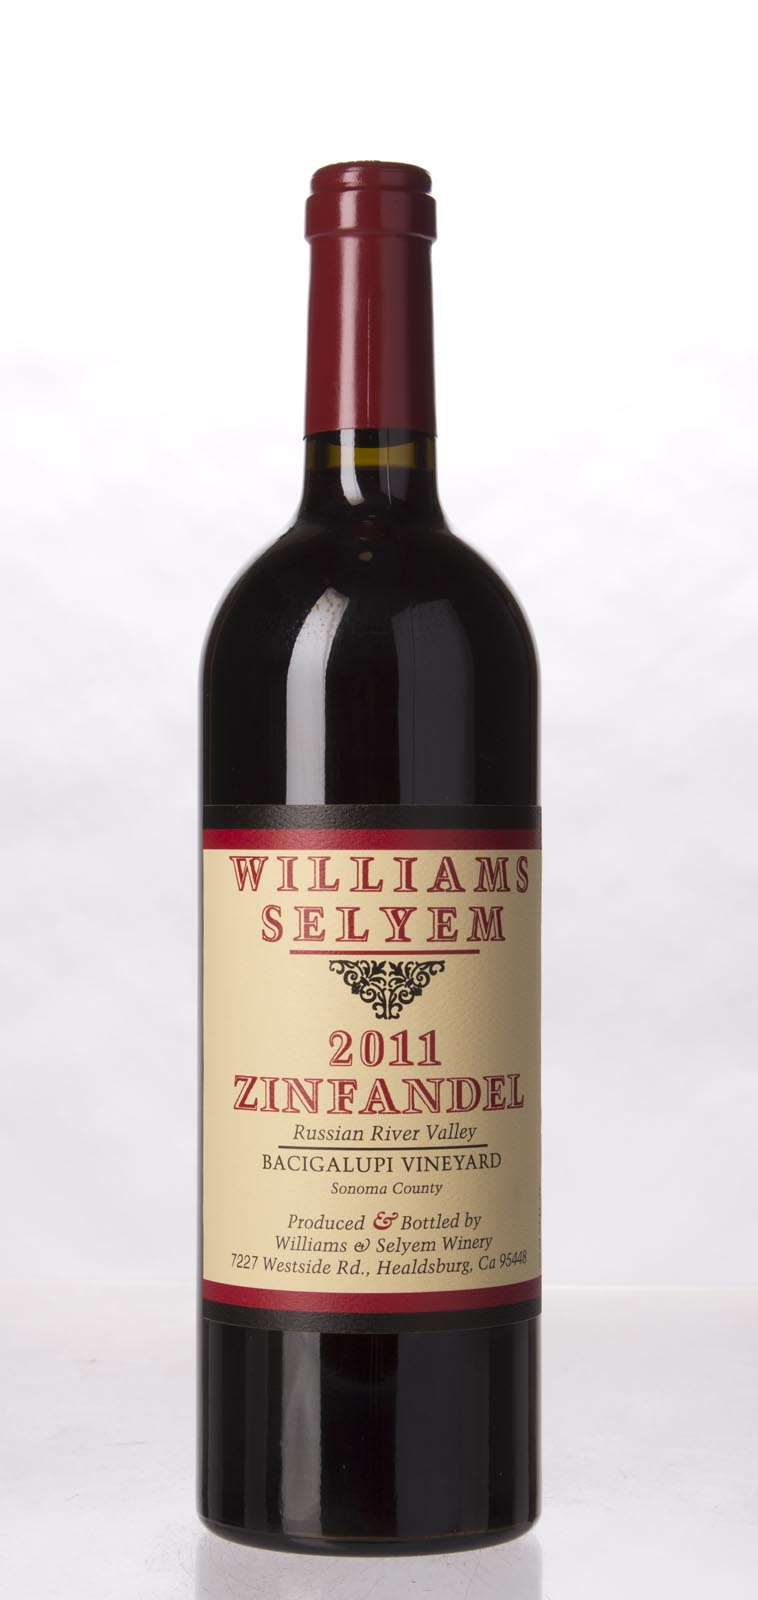 Williams Selyem Zinfandel Bacigalupi Vineyard 2011, 750mL (ST93) from The BPW - Merchants of rare and fine wines.